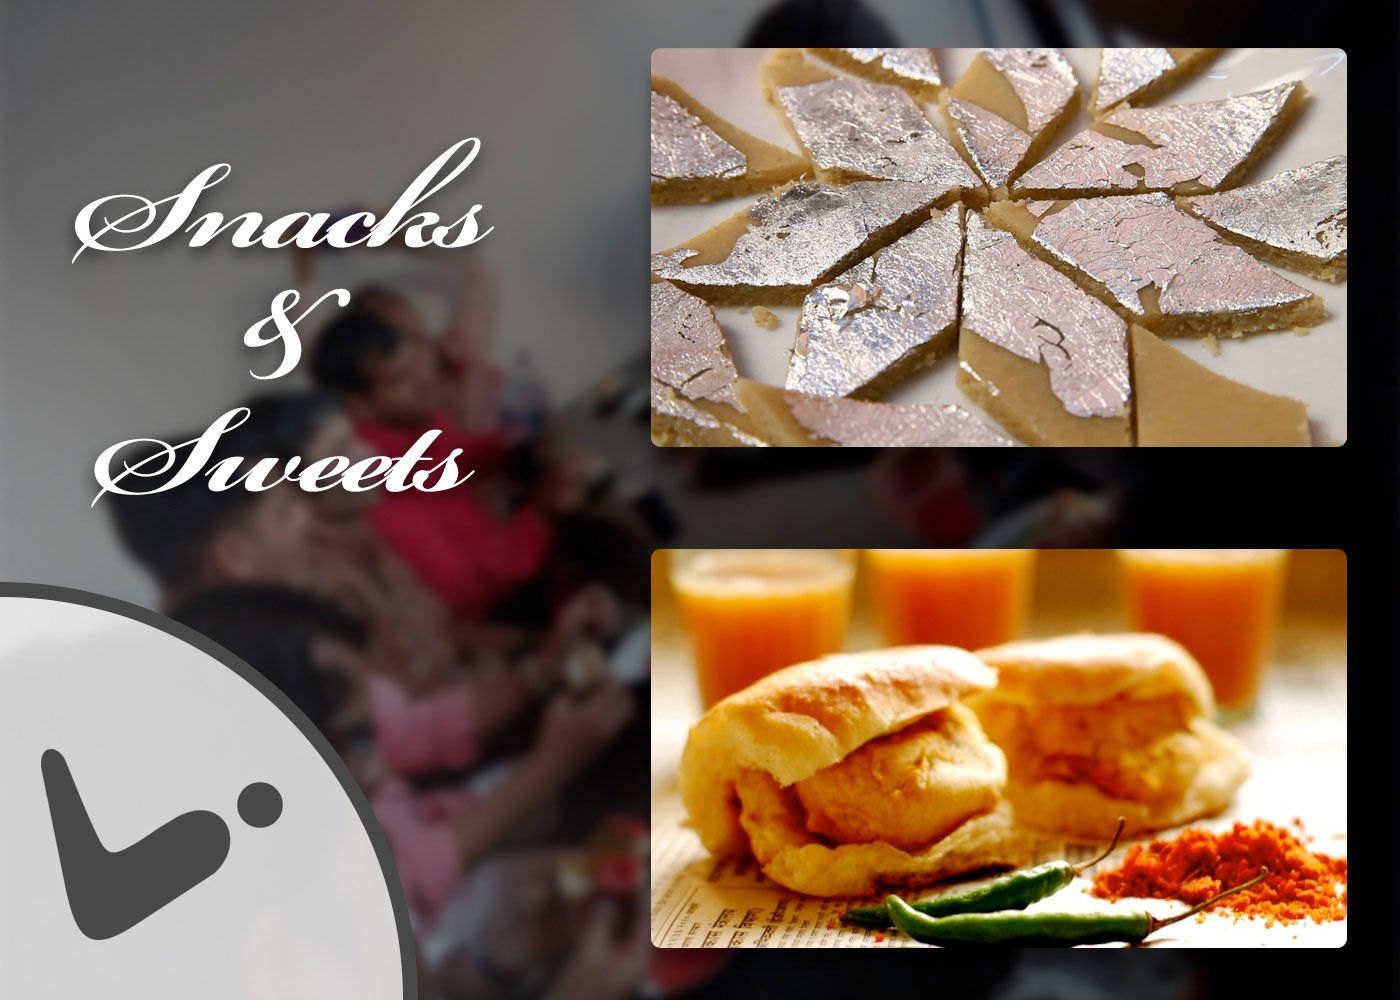 Snacks and Sweets for Diwali Celebration Event at Logistic Infotech